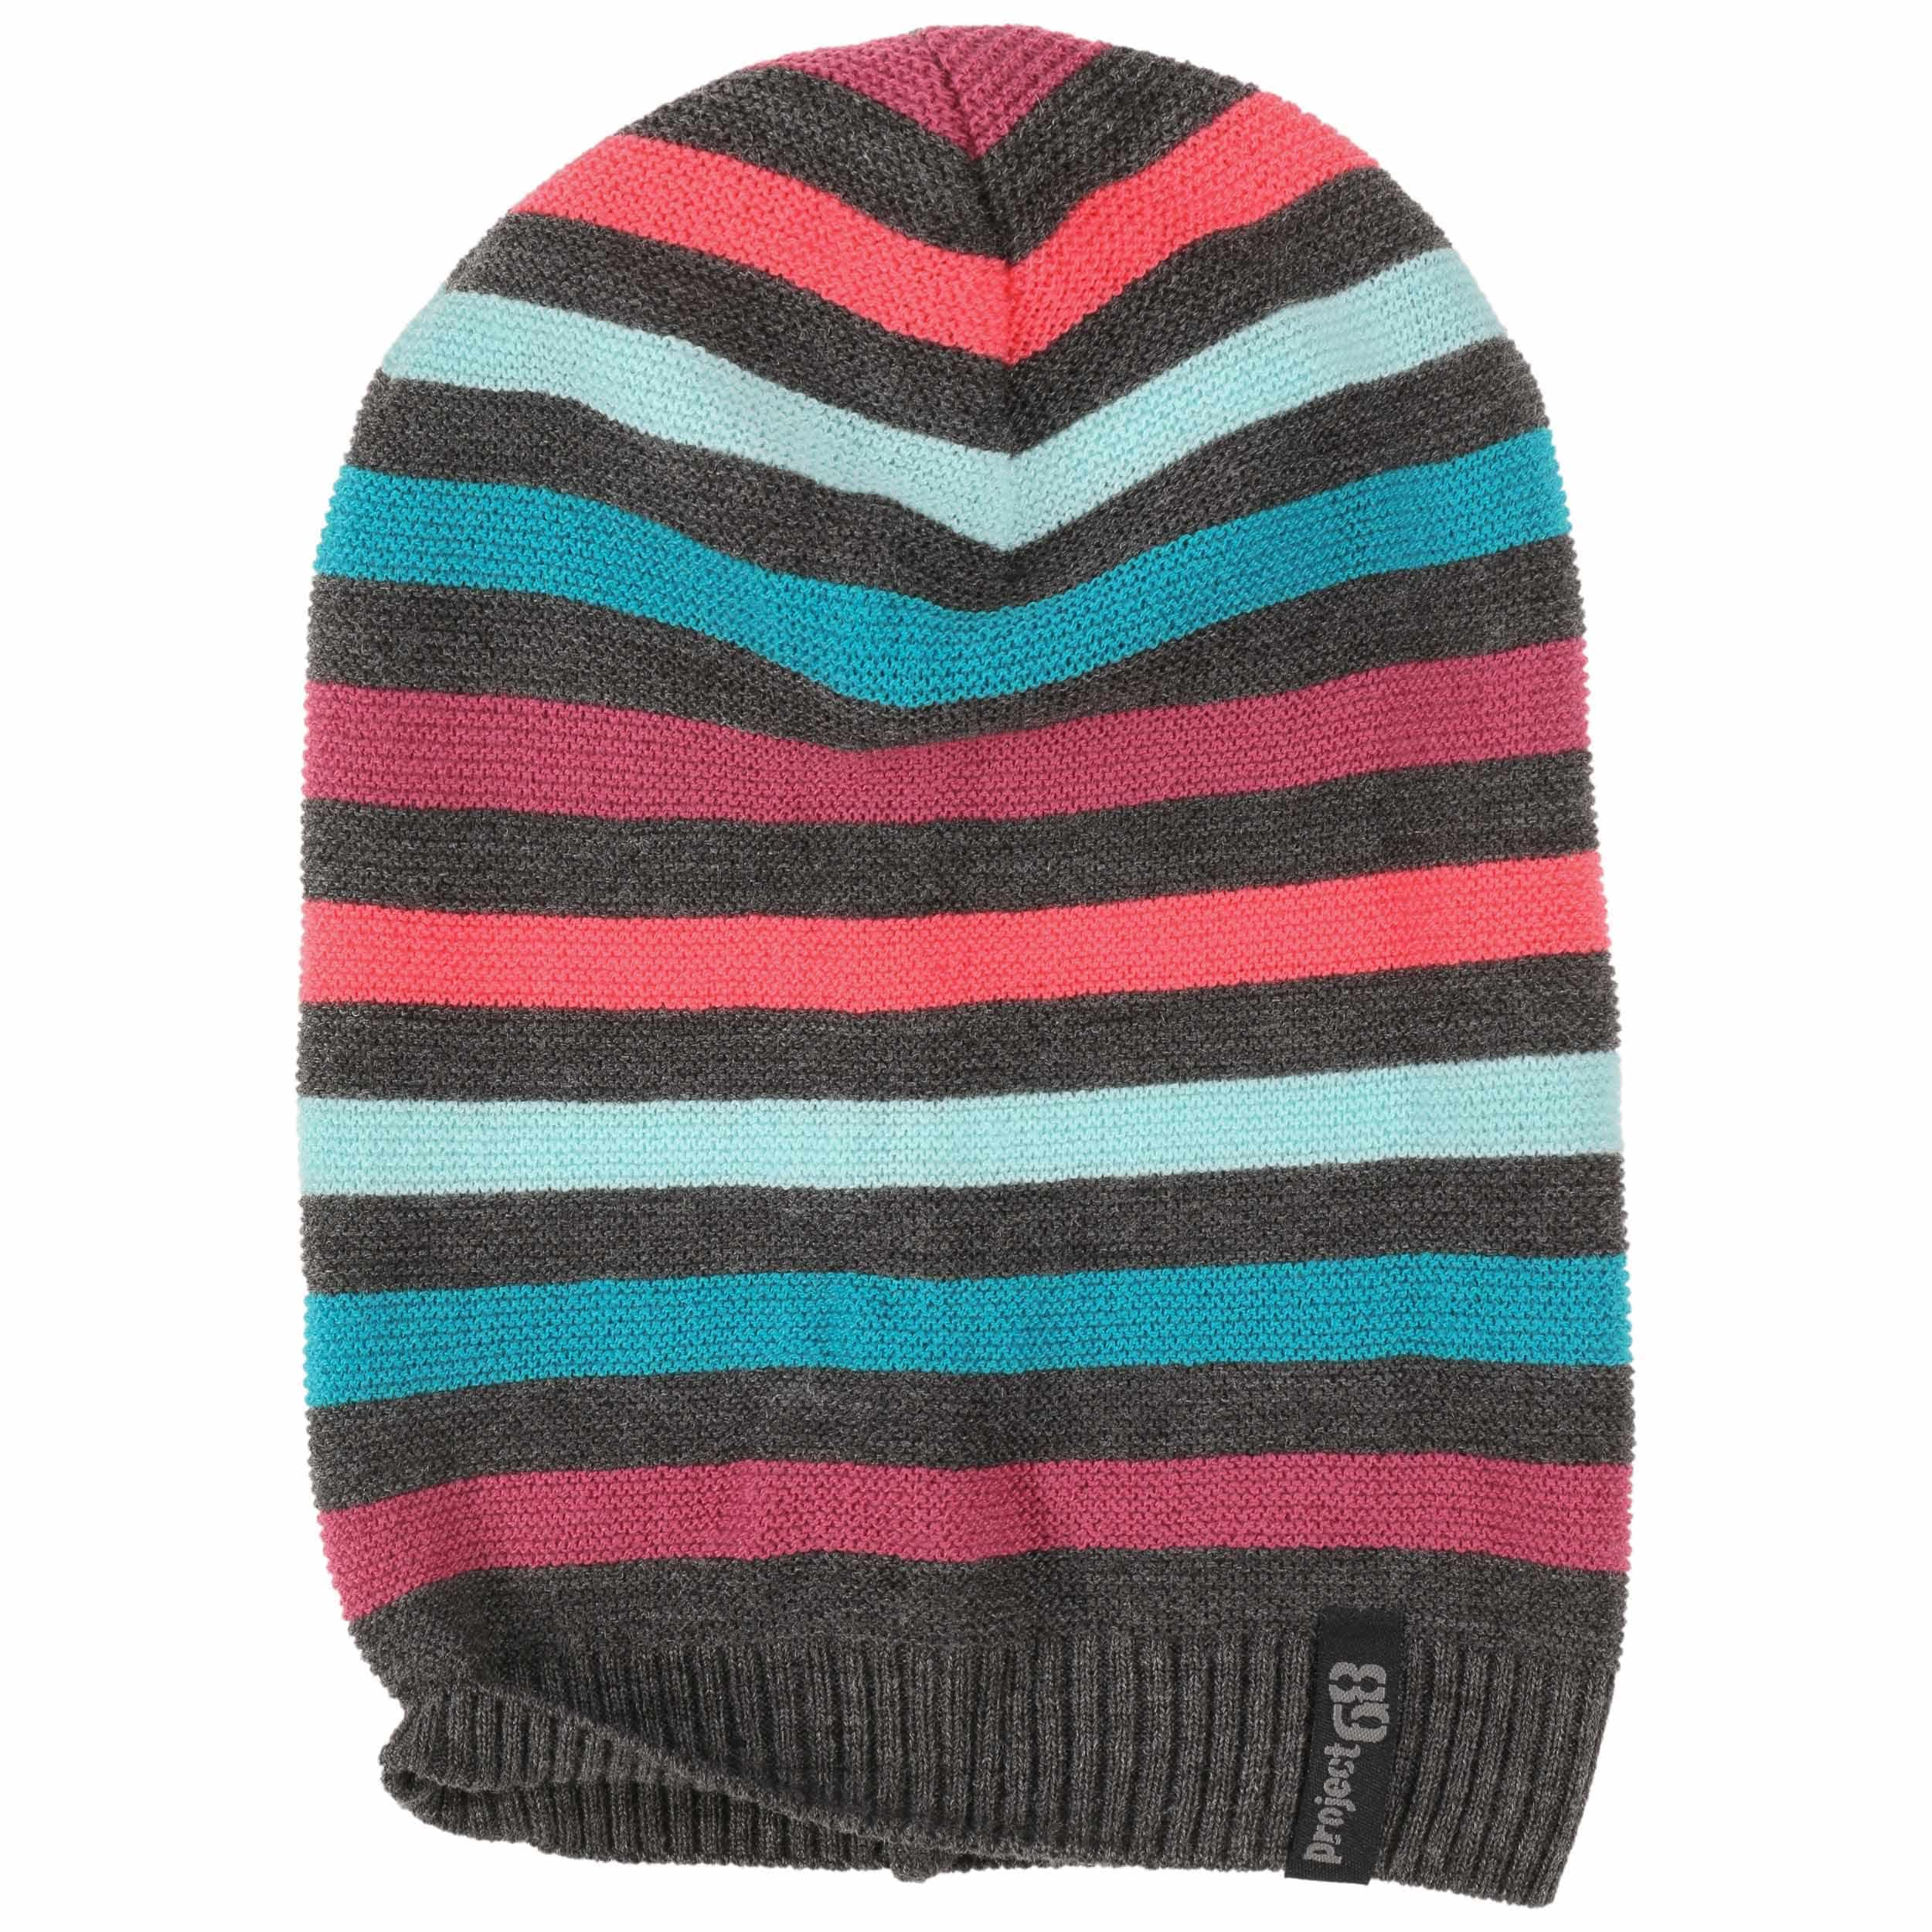 Colour Stripes Long Beanie by Sterntaler, GBP 13,95 --  Hats, caps ... 6849bf514f1